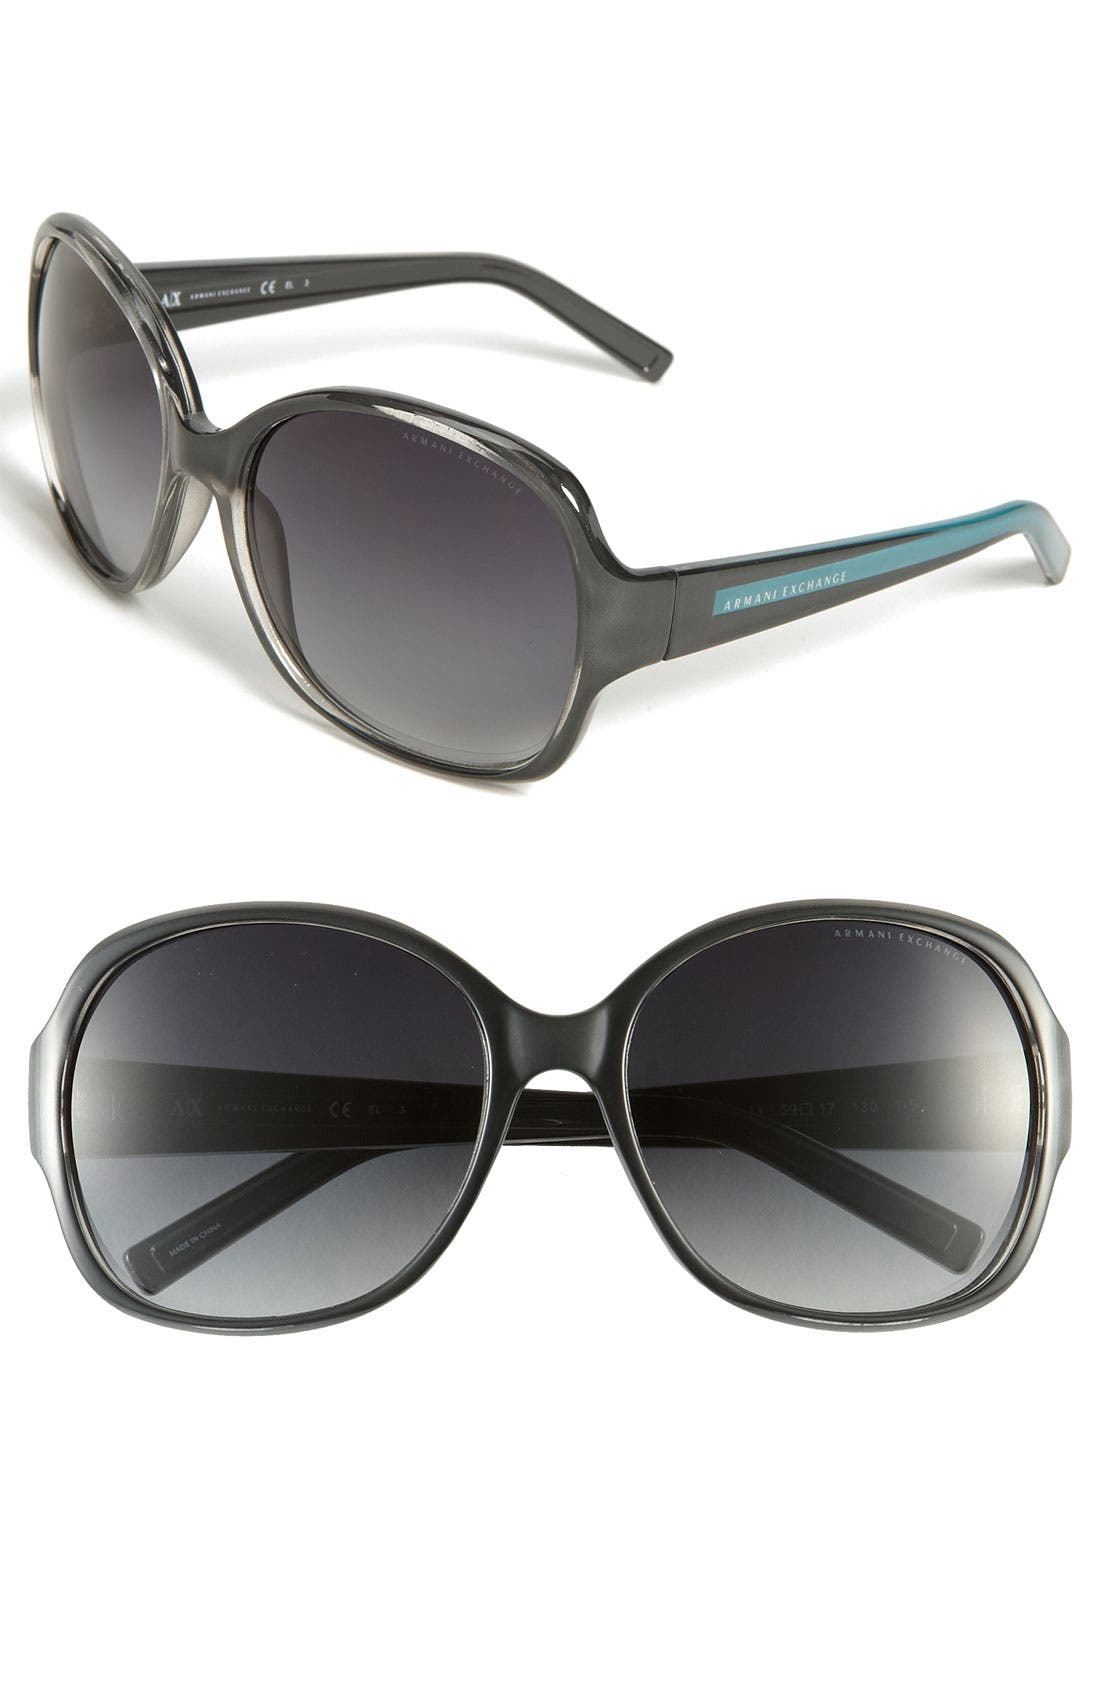 Alternate Image 1 Selected - AX Armani Exchange Oversized Square Sunglasses